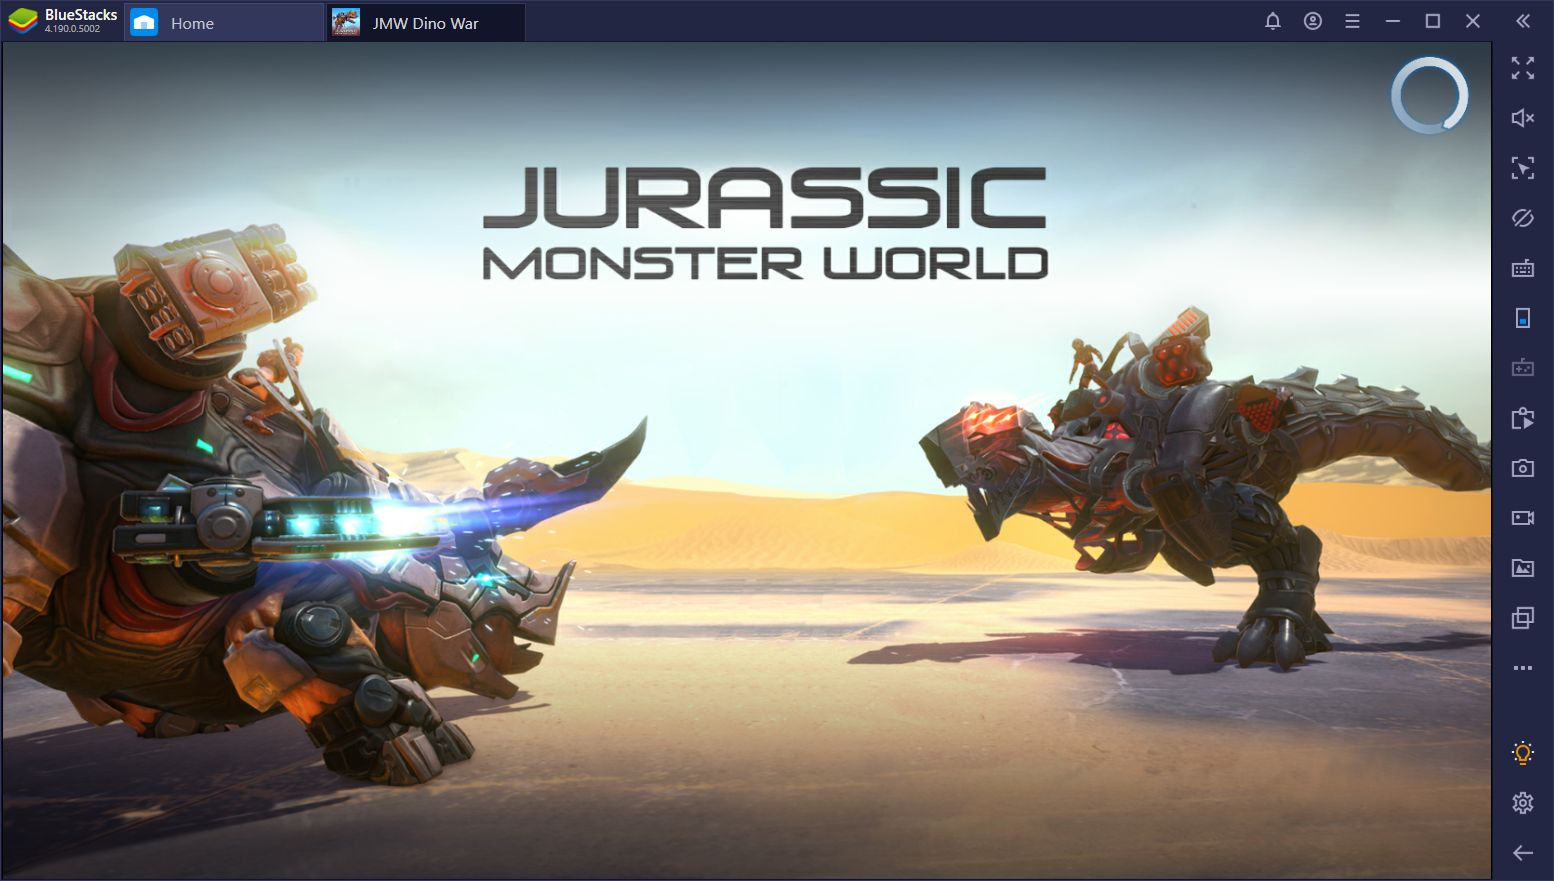 Beginner's Guide for Jurassic Monster World: Dinosaur War 3D FPS